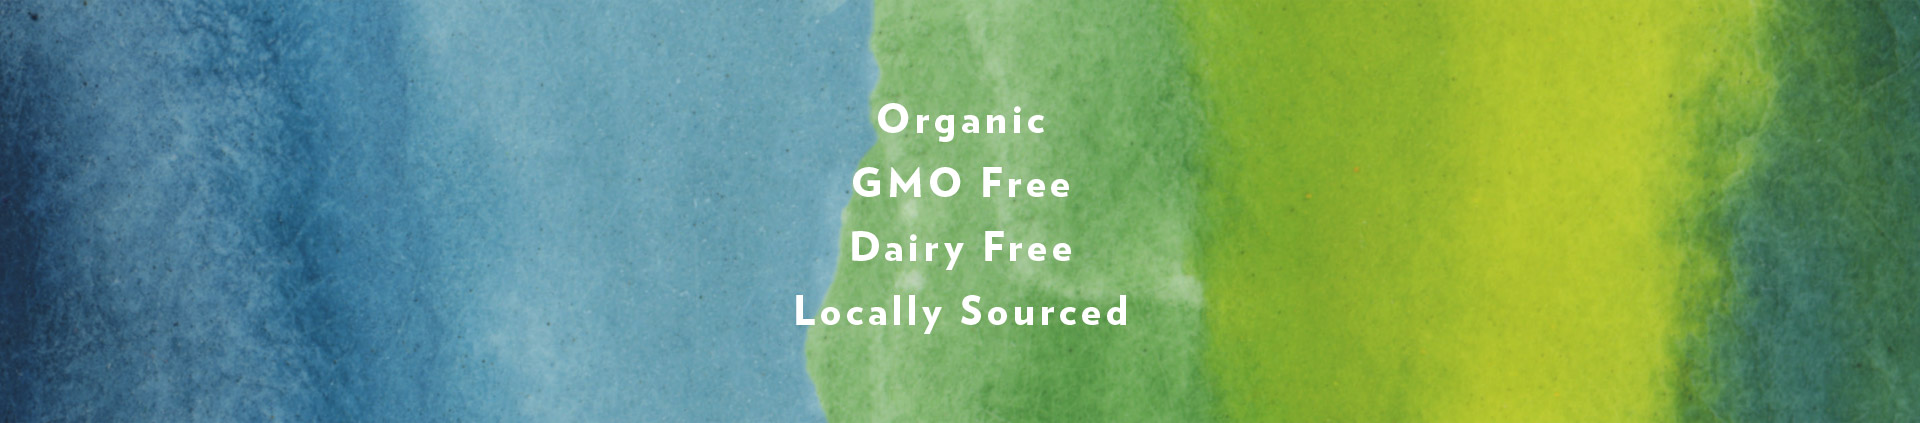 Organic, GMO Free, Dairy Free, Locally Sourced